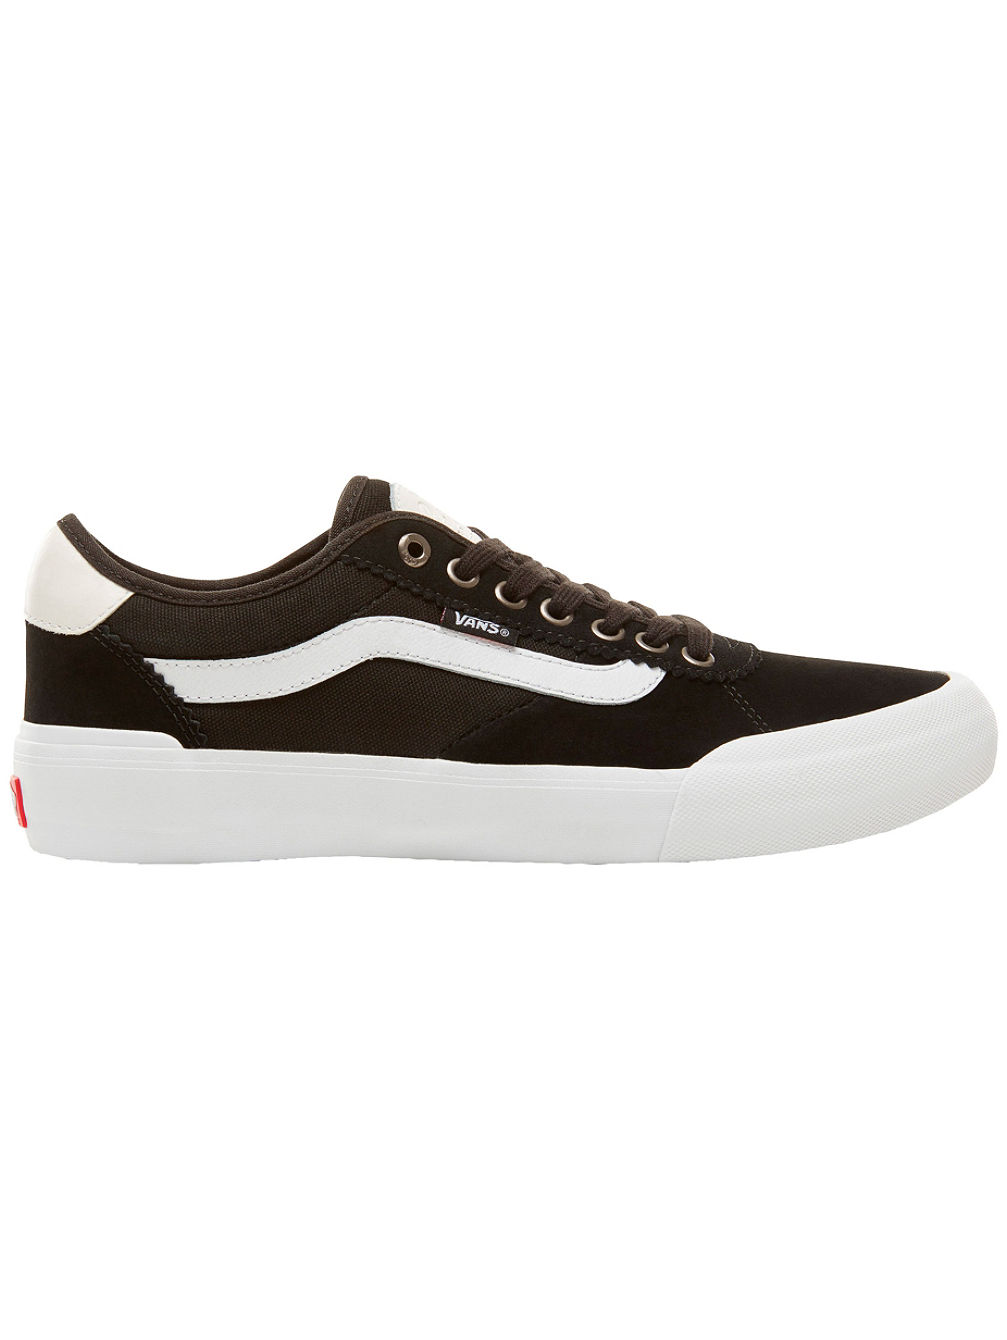 Suede/Canvas Chima Pro 2 Skate boty